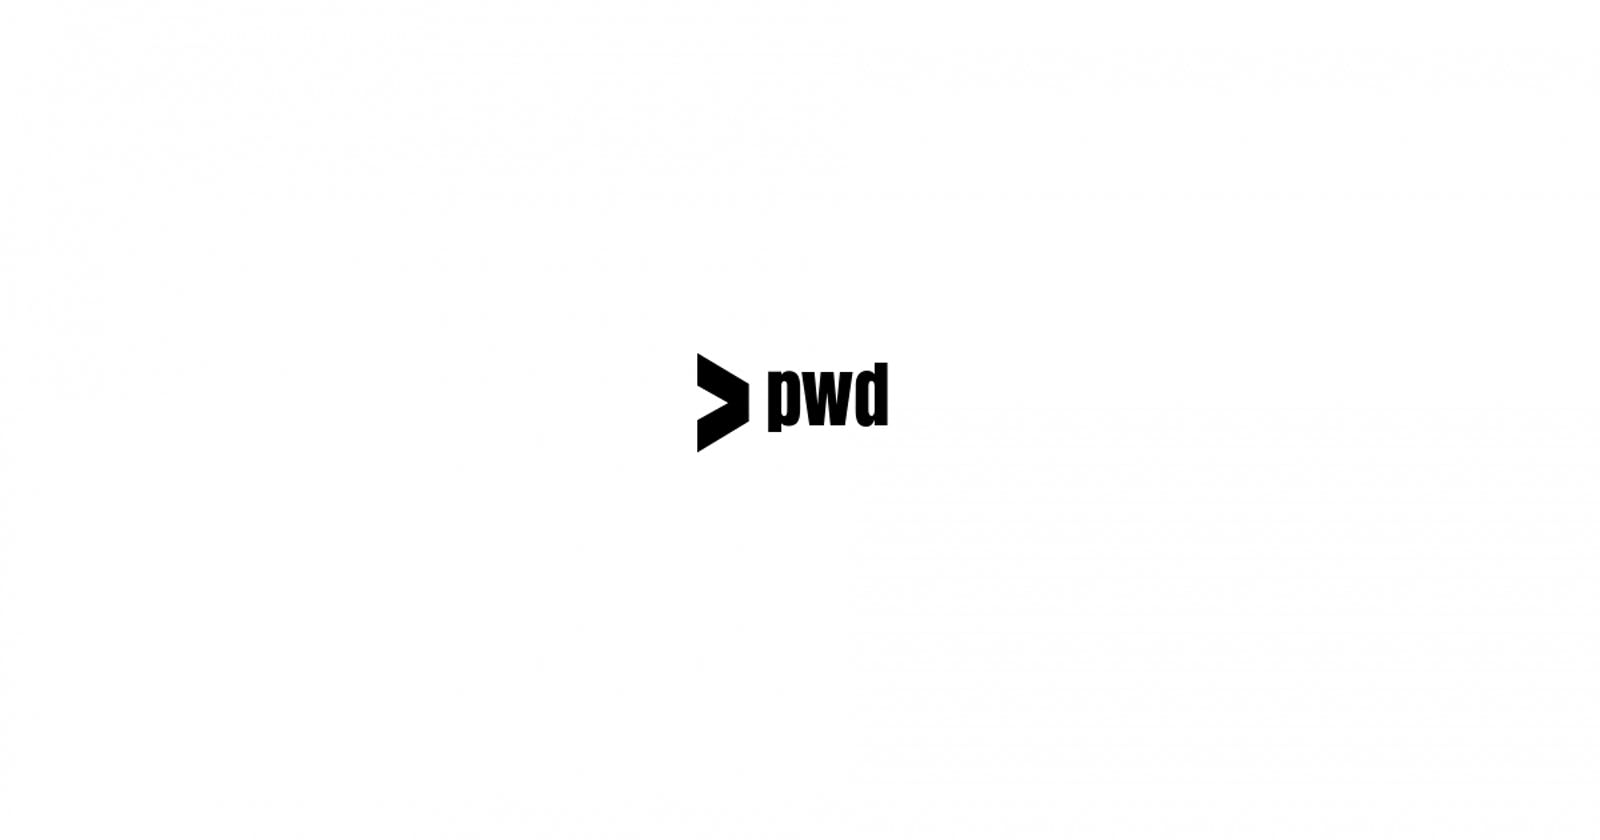 Linux Commands: pwd